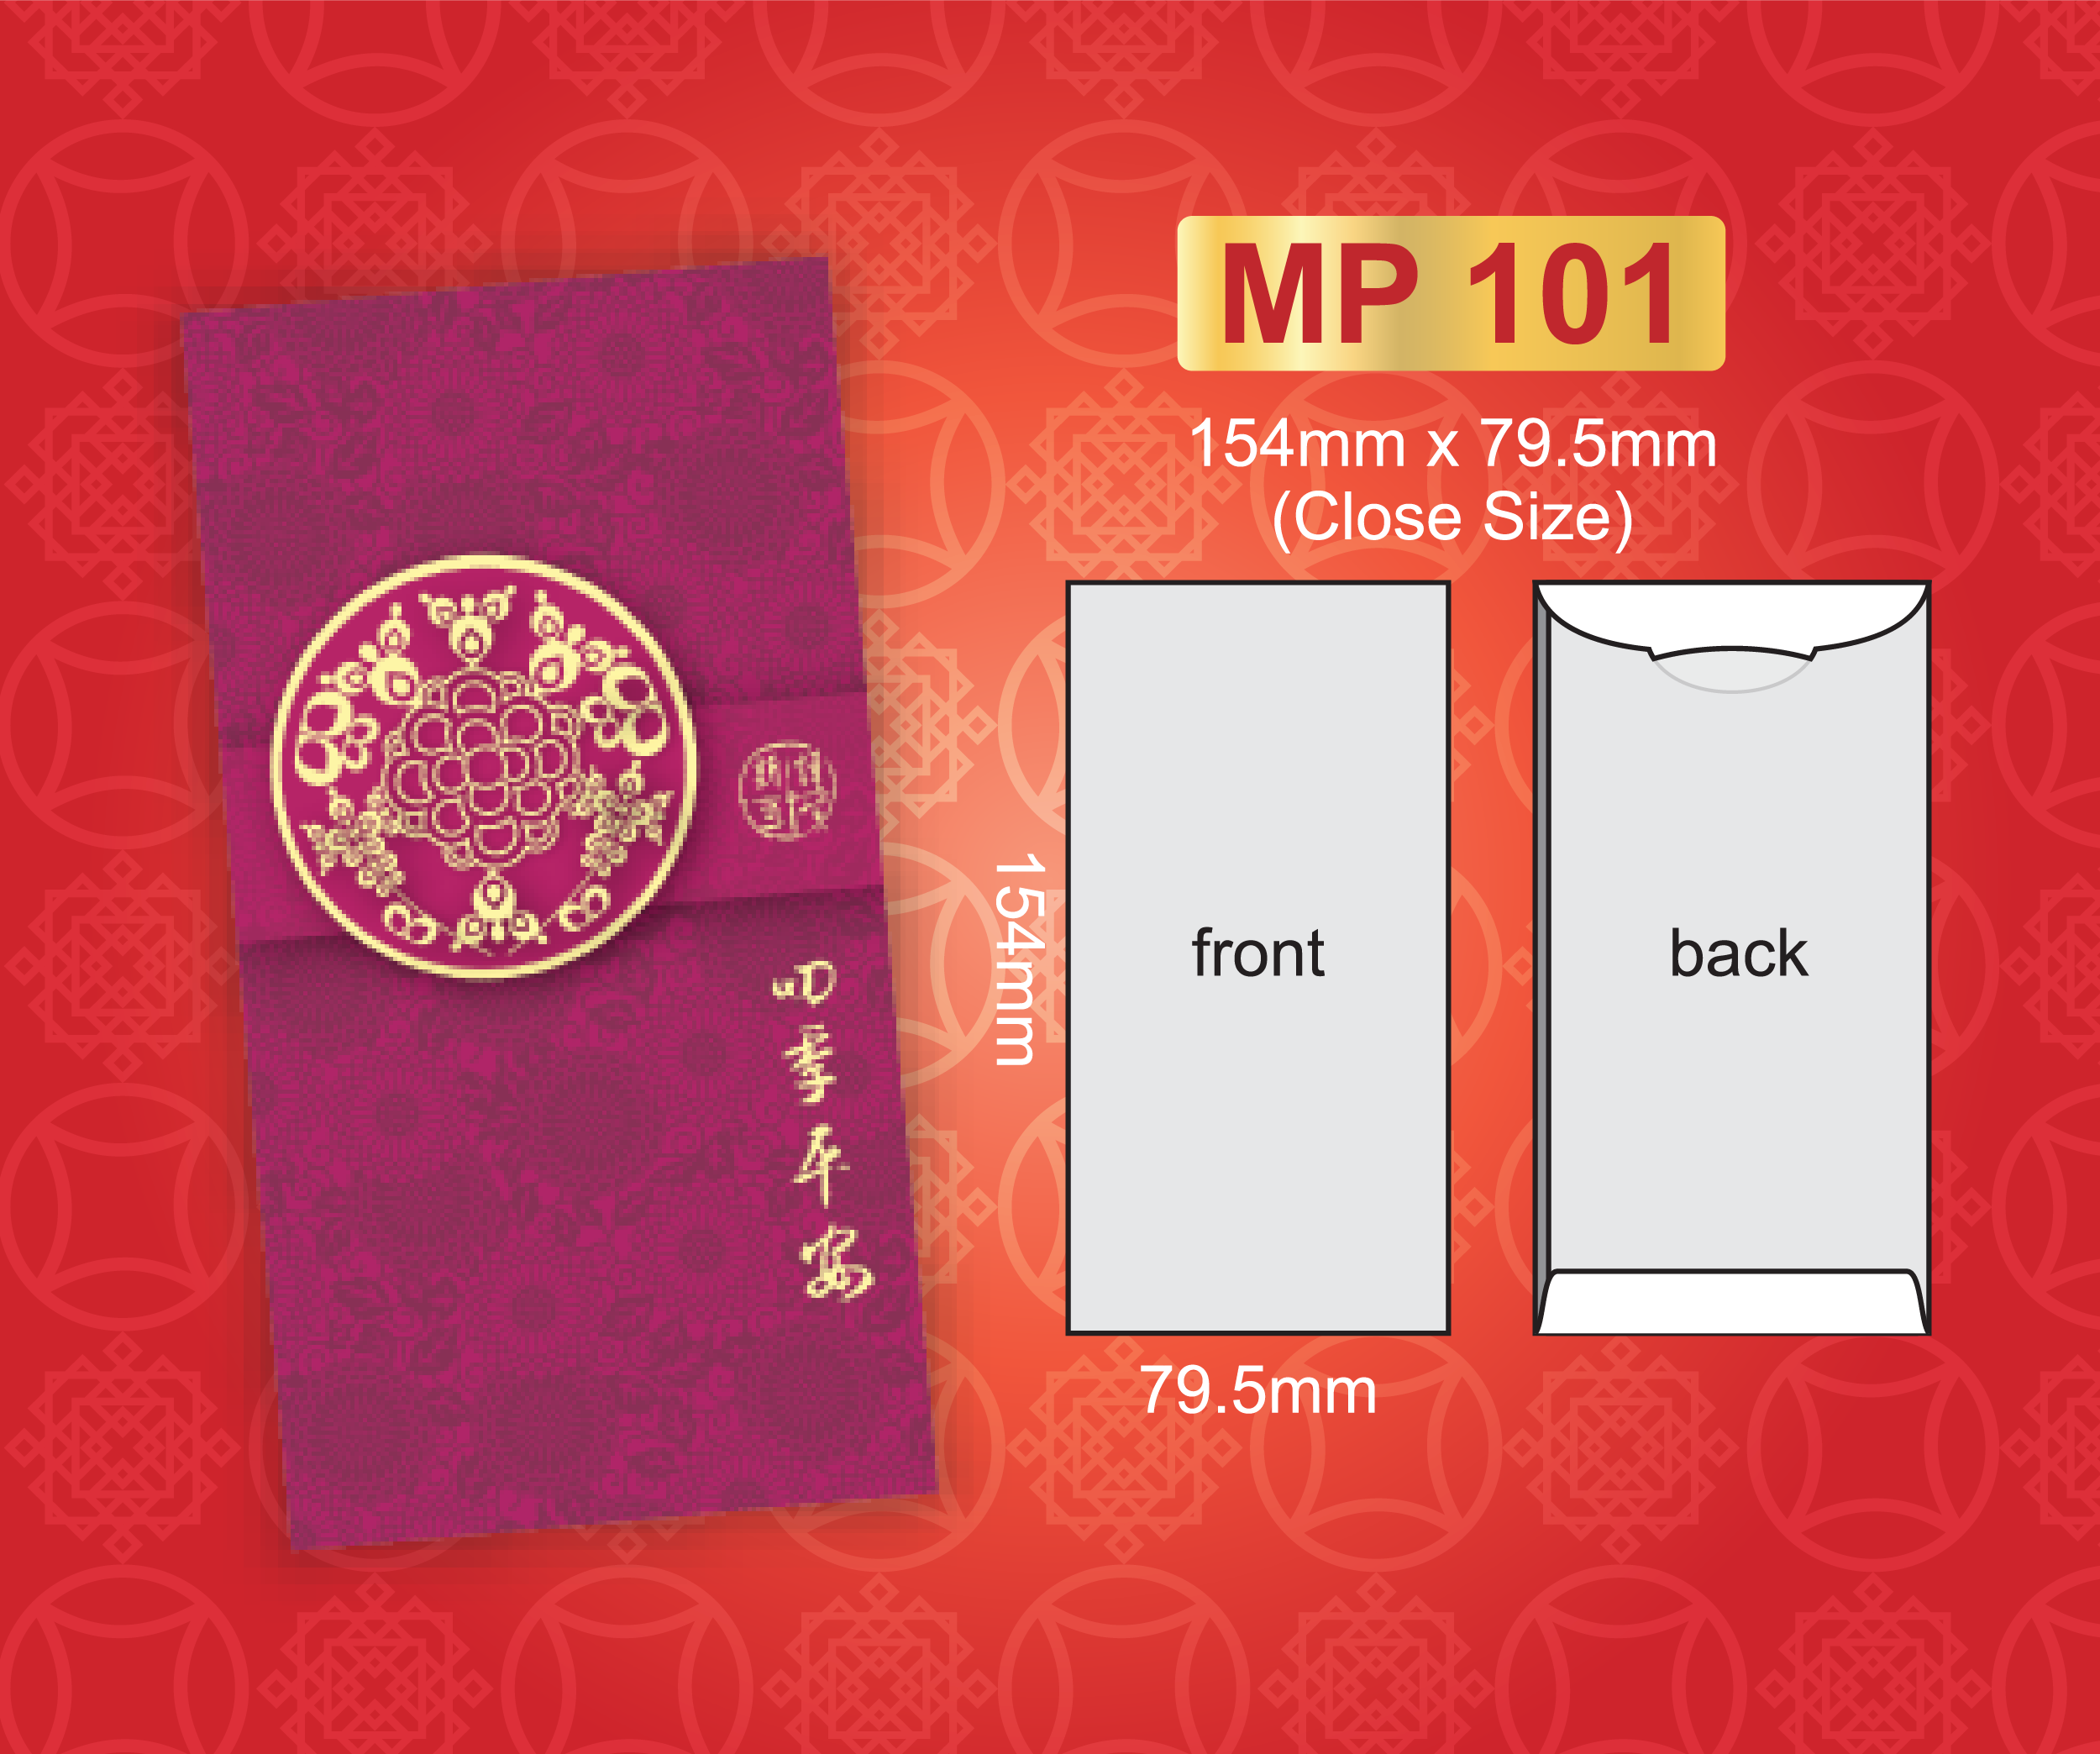 Custom Print Money Packet (130gsm Gloss Art Paper) Money Packet Guide Portrait MP101